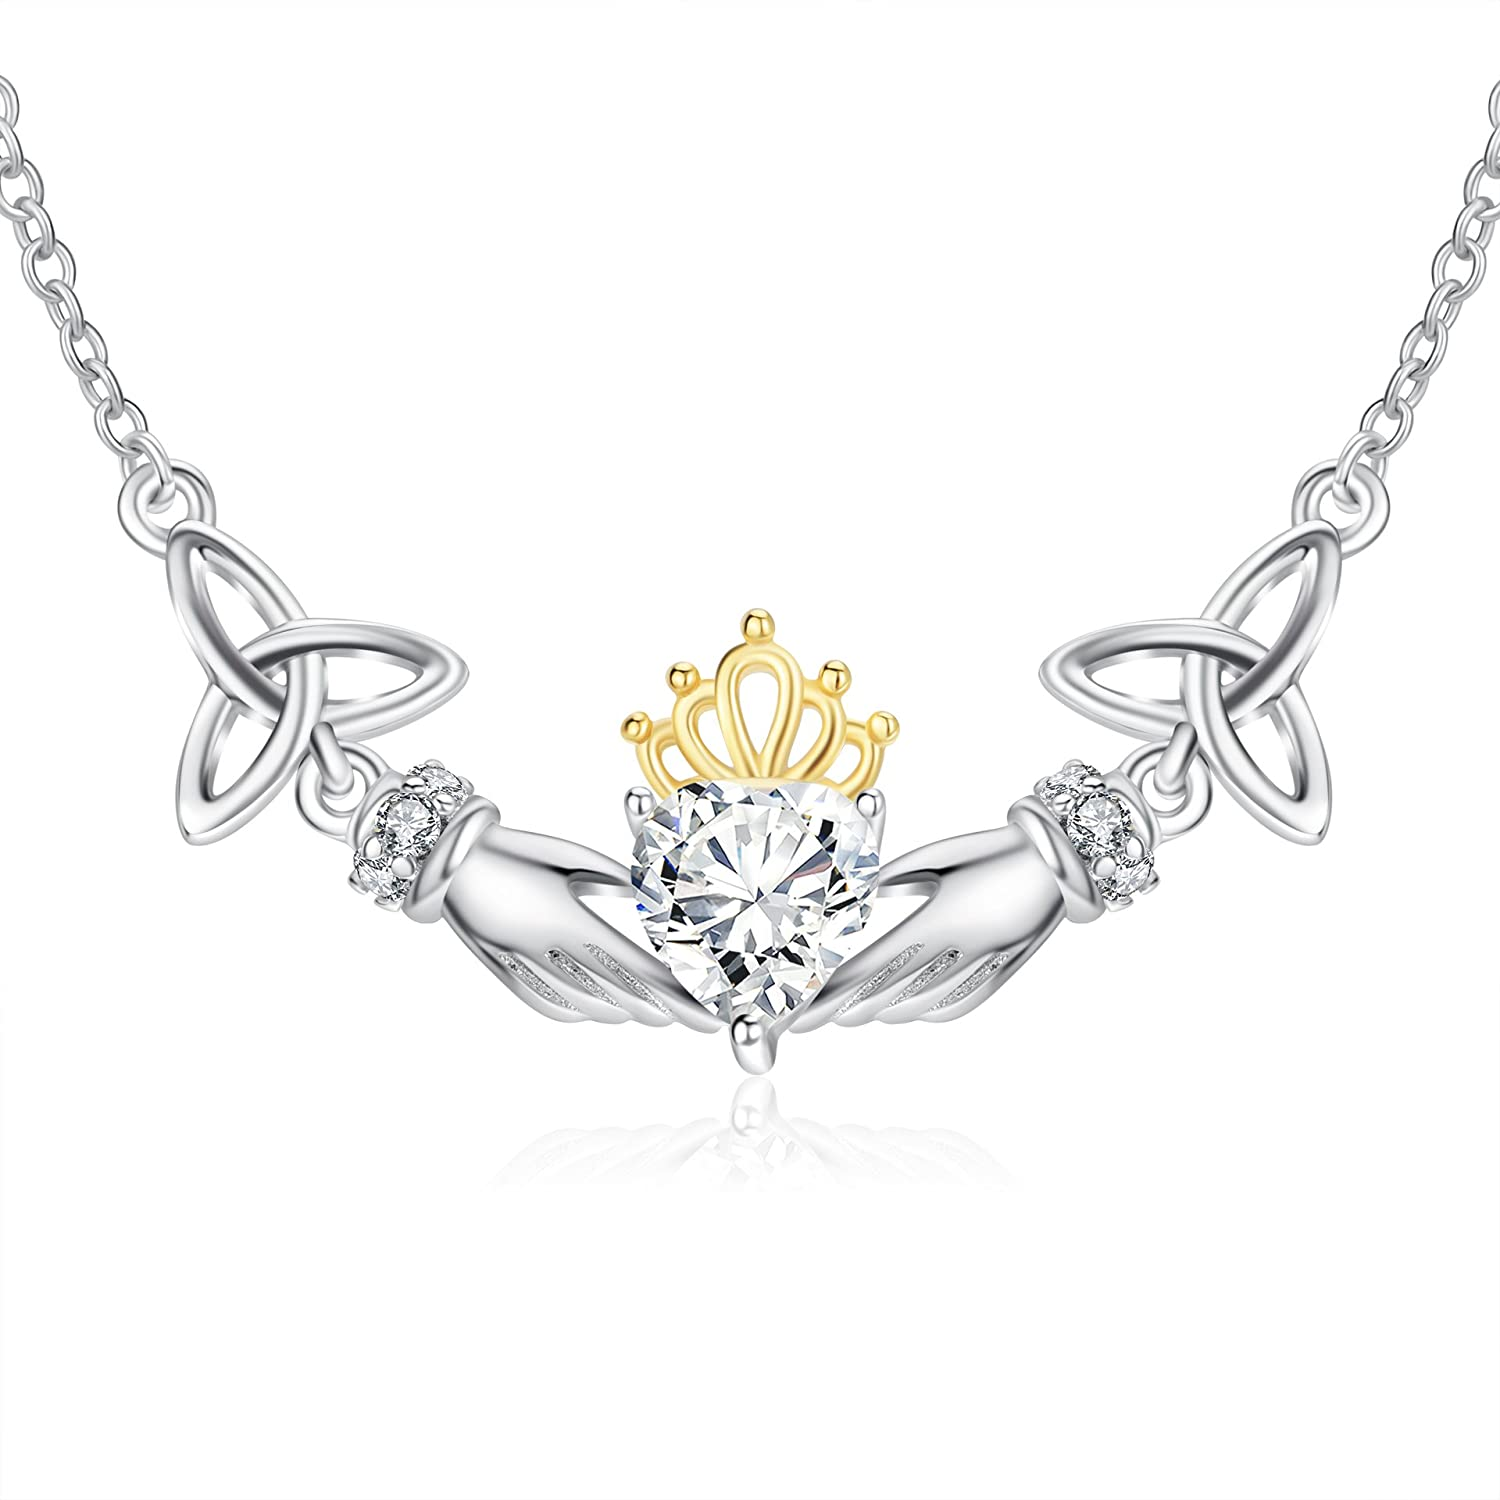 POPLYKE Sterling Silver Irish Celtic Knot Claddagh Crown Heart Pendant  Necklace for Women